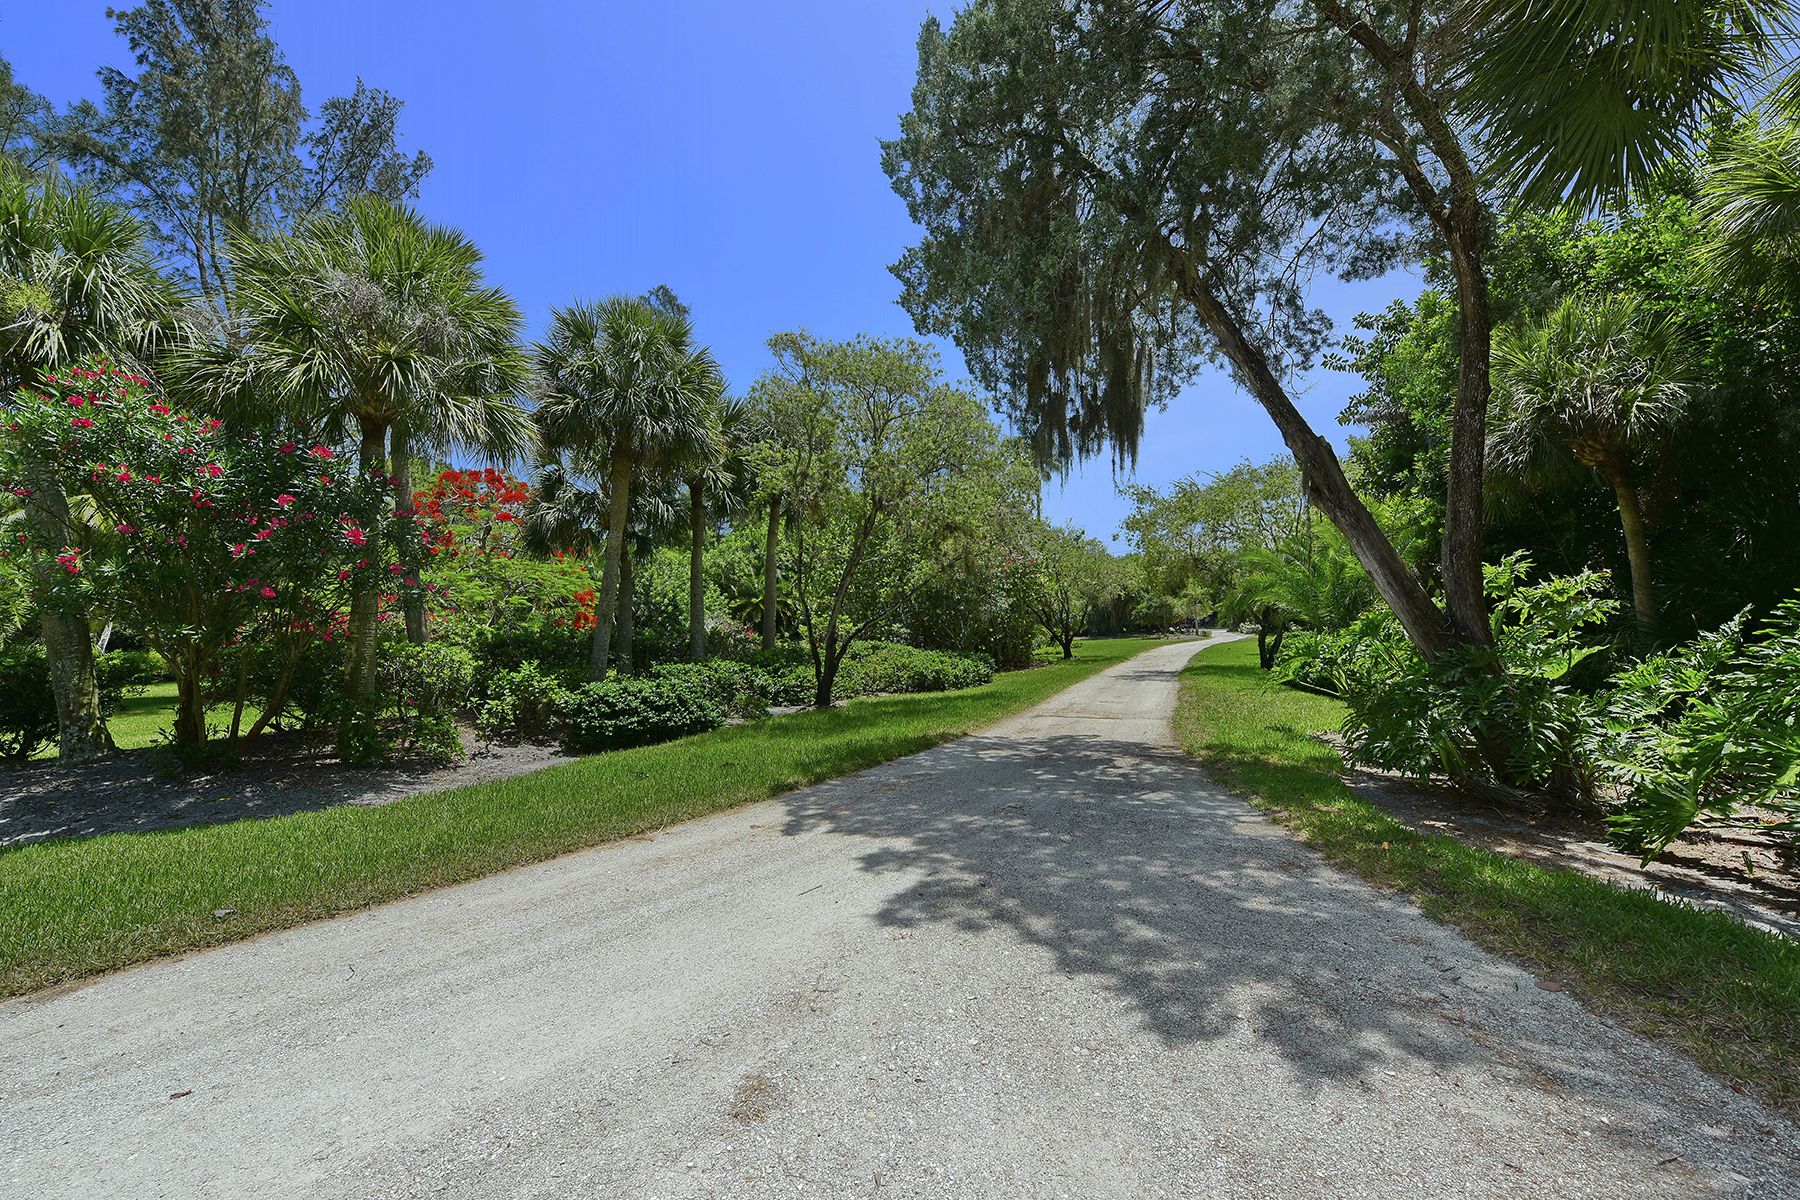 Terreno por un Venta en LONGBOAT KEY 4 ACRES 6680 Gulf Of Mexico Dr 3 & 4 Longboat Key, Florida 34228 Estados Unidos